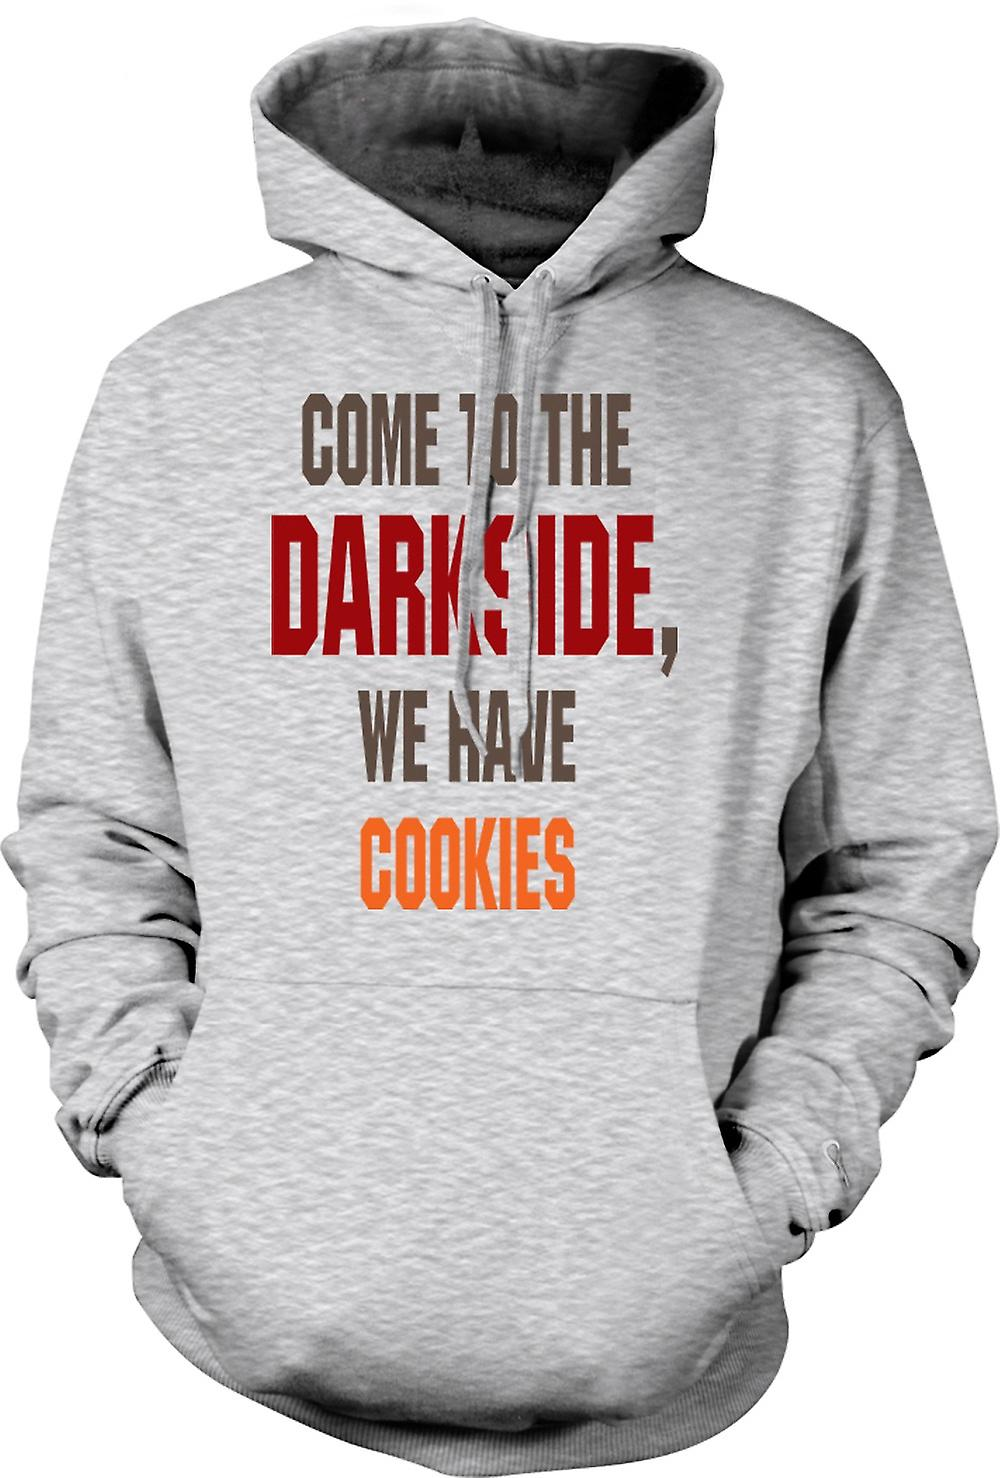 Mens Hoodie - Come To The Darkside, We Have Cookies - Funny